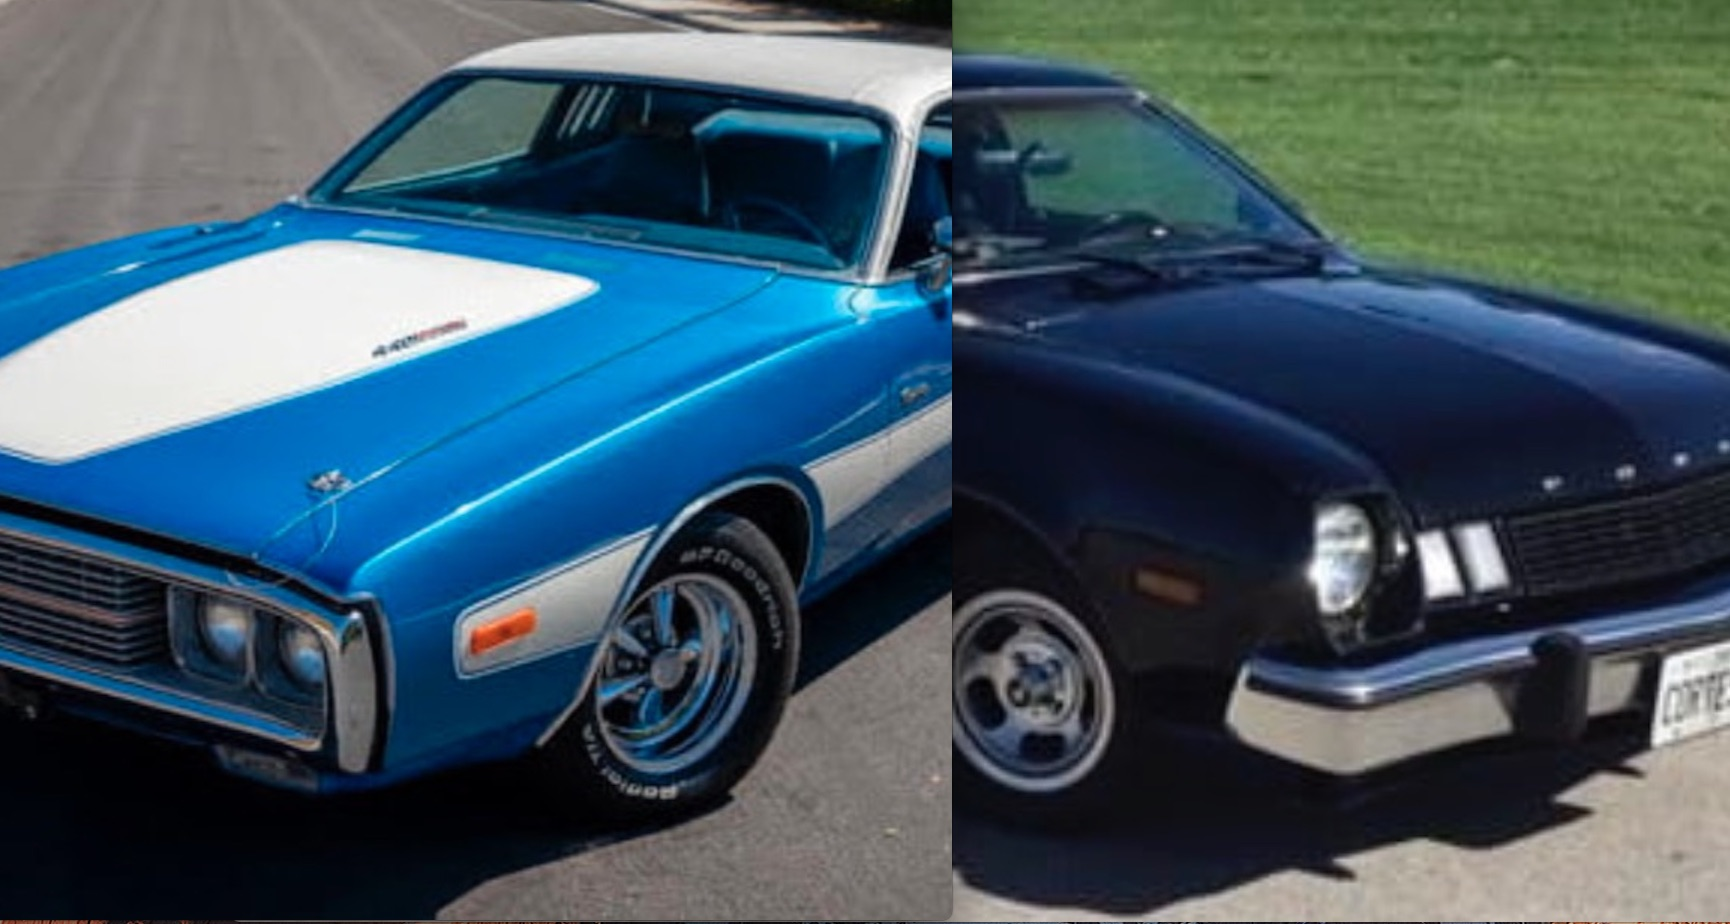 BangShift's Question Of The Day: Which Of These Two Cars Represents The 1970s More?